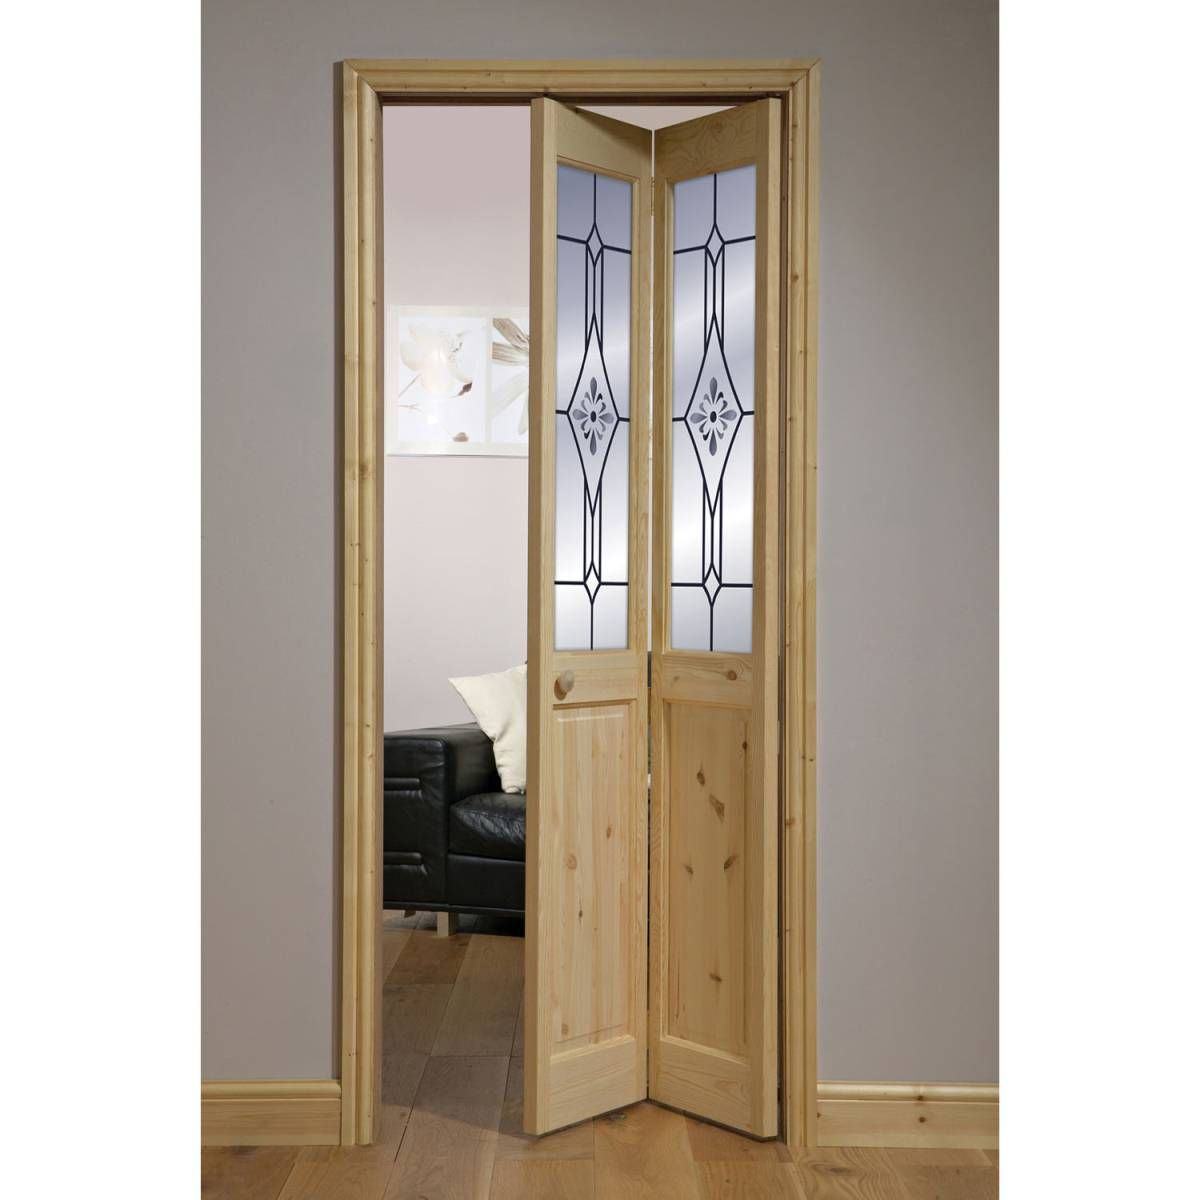 Prehung interior french doors with frosted glass doors pinterest prehung interior french doors with frosted glass planetlyrics Gallery